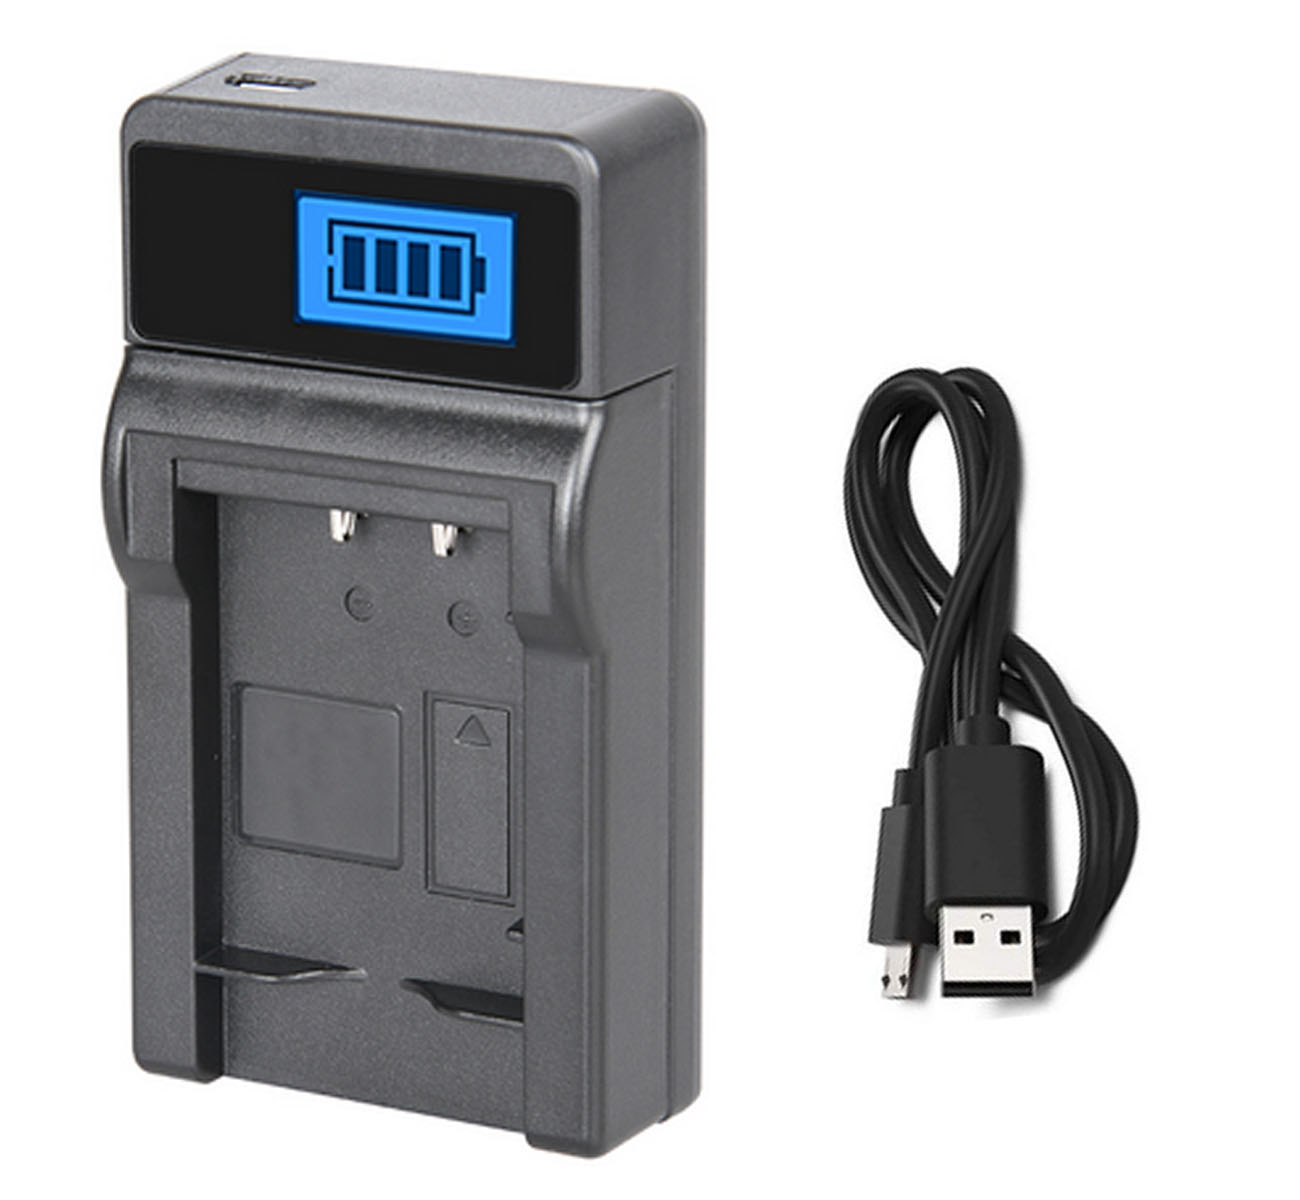 Battery Charger For Nikon Coolpix AW110s  AW120s  AW130s  W300  B600  A900  A1000 Digital Camera|Camera Charger|Consumer Electronics - title=